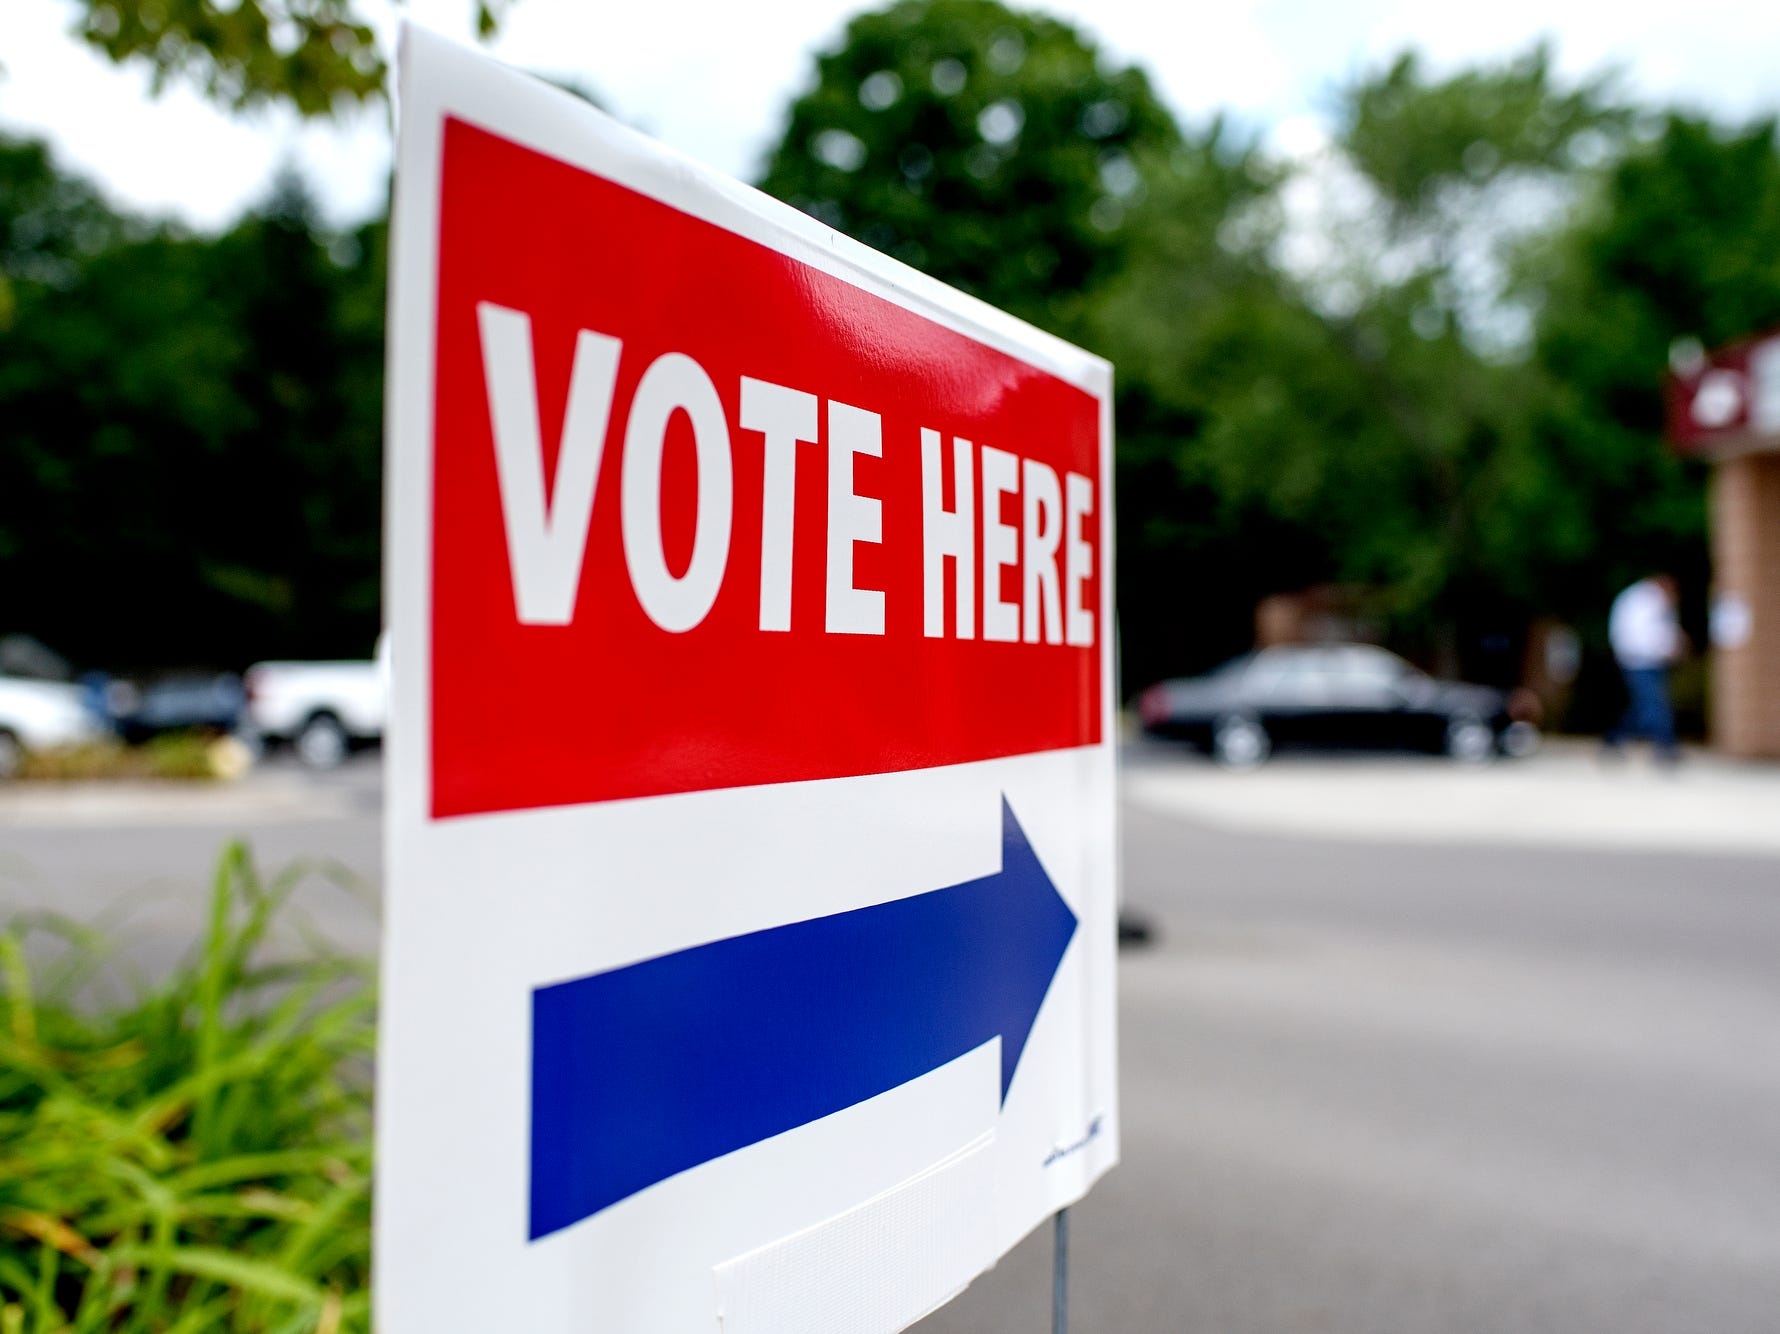 A sign outside guides voters to the polling place at University United Methodist on Tuesday, Aug. 7, 2018, in East Lansing.